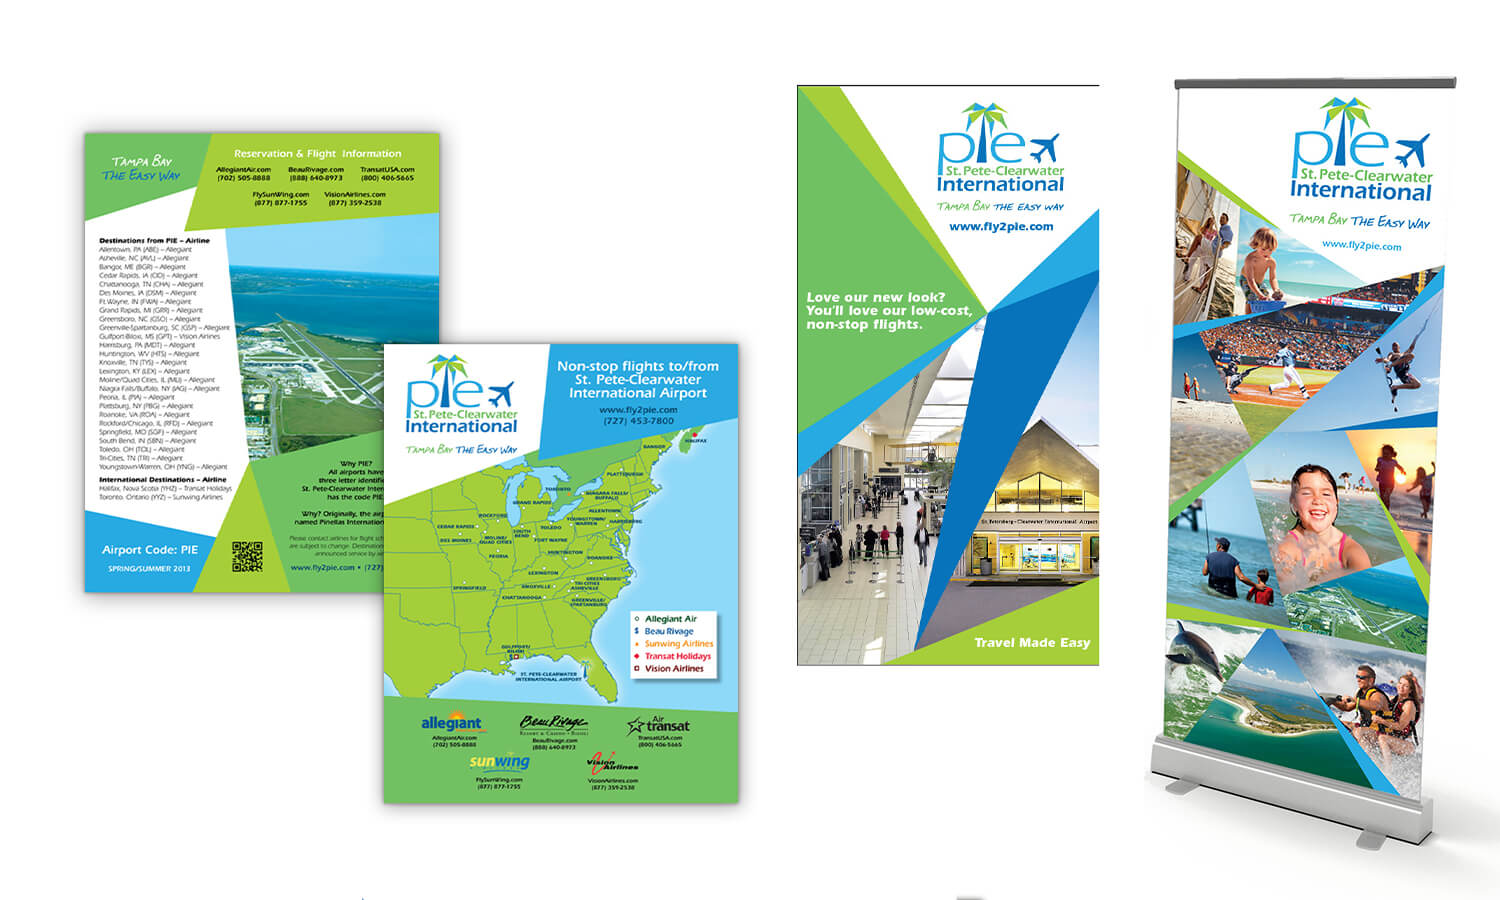 St. Pete-Clearwater International Airport Collateral